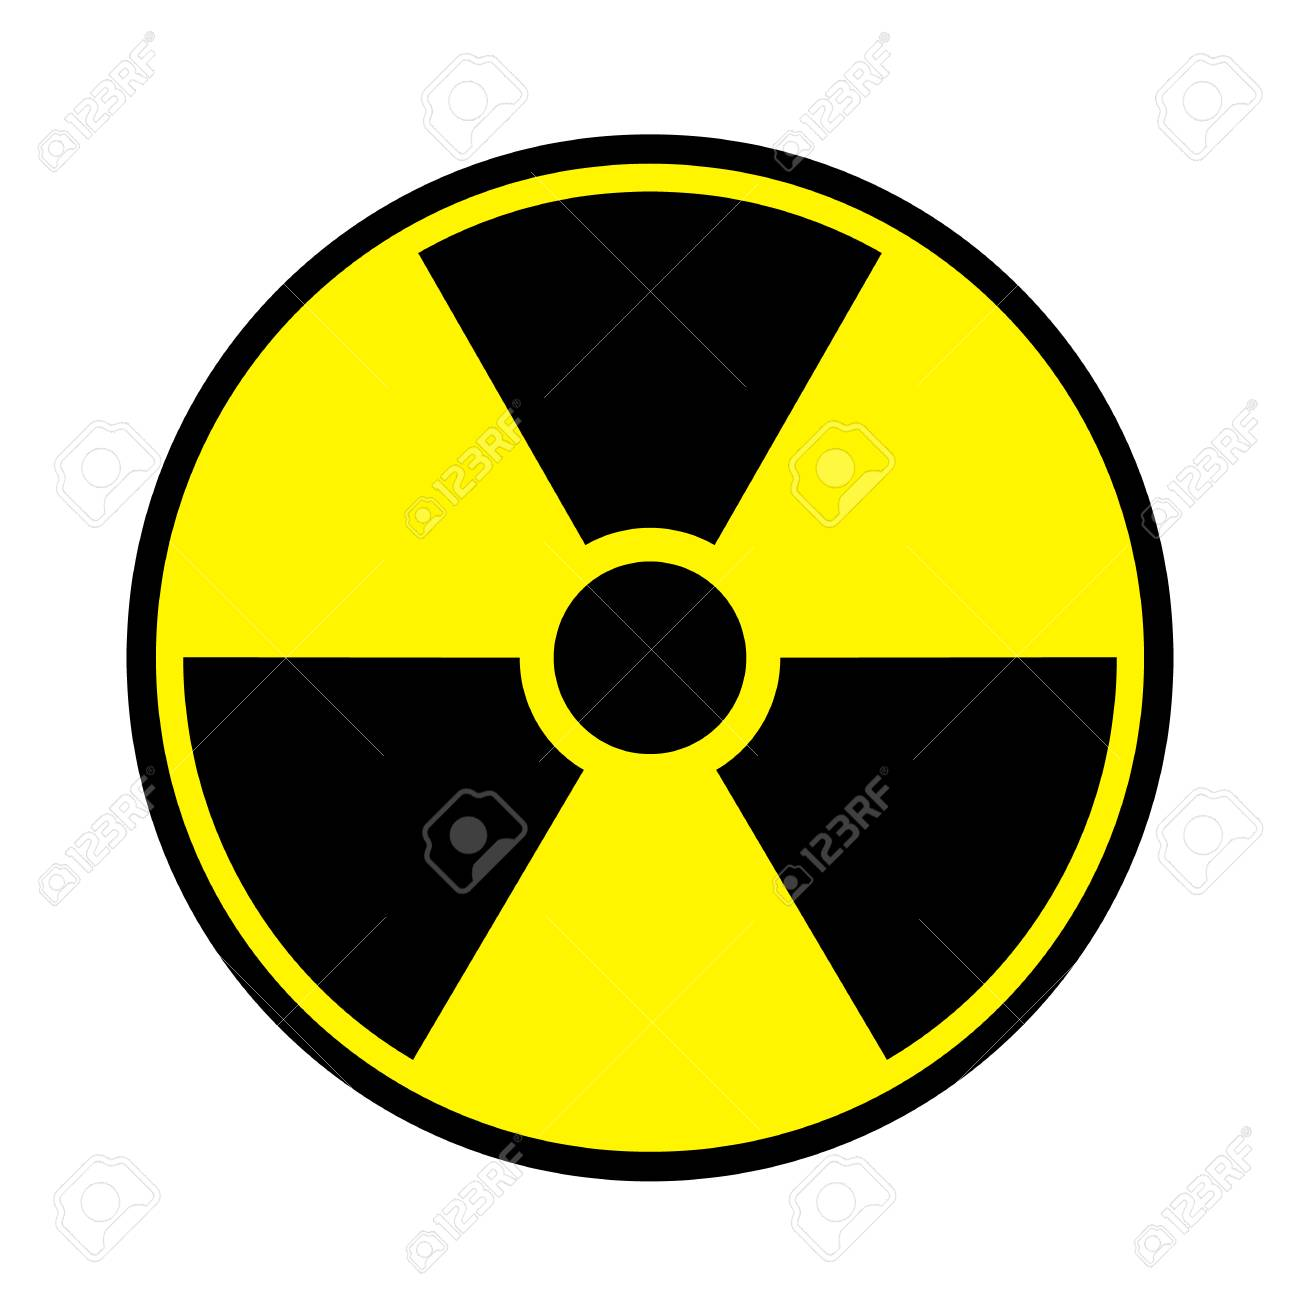 vector illustration toxic sign symbol warning radioactive zone rh 123rf com radioactif logo wallpaper radioactive looking slime